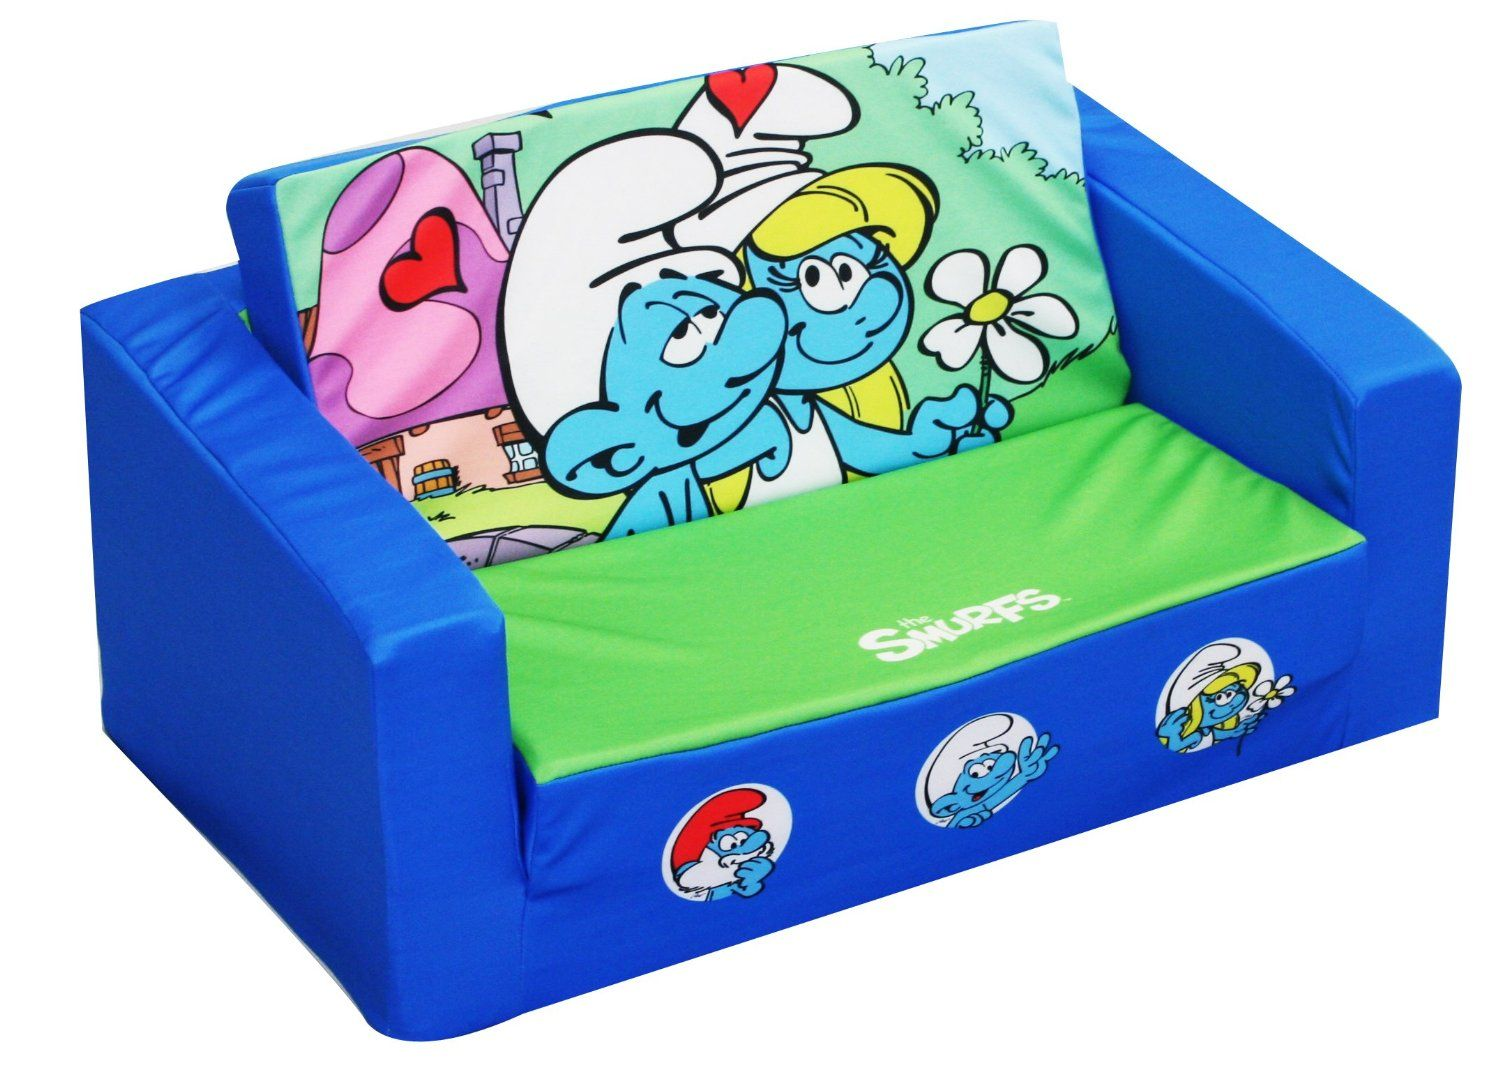 The Smurfs Children Room Furniture Kids Sofa Smurfs Kids Room